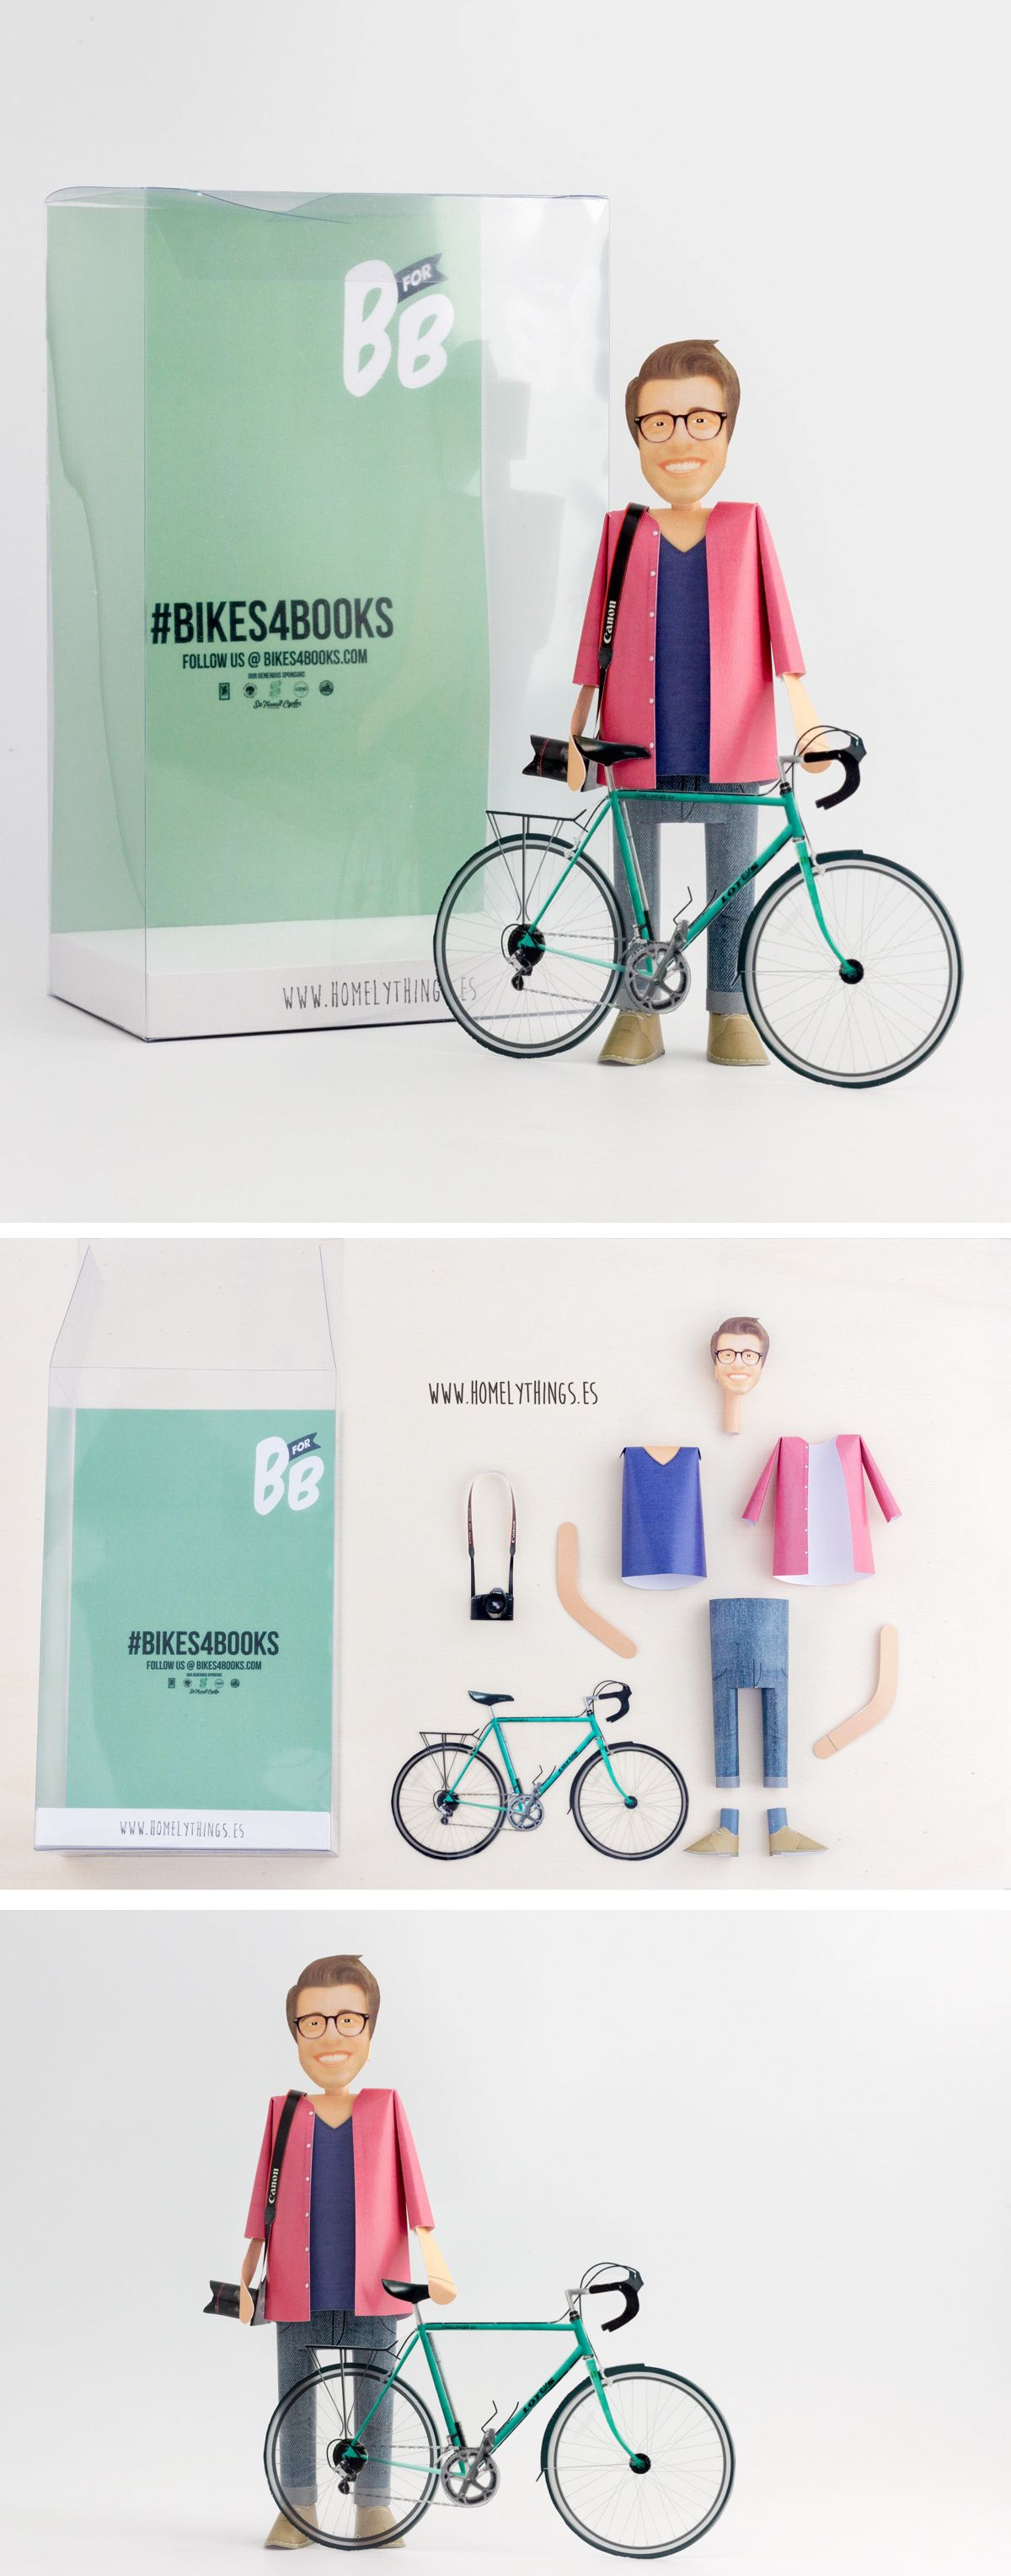 papertoy bikes for book!! #bikesforbooks, #bforb, #papertoy, #papertoypersonalizado, #paperbike, #homelythings